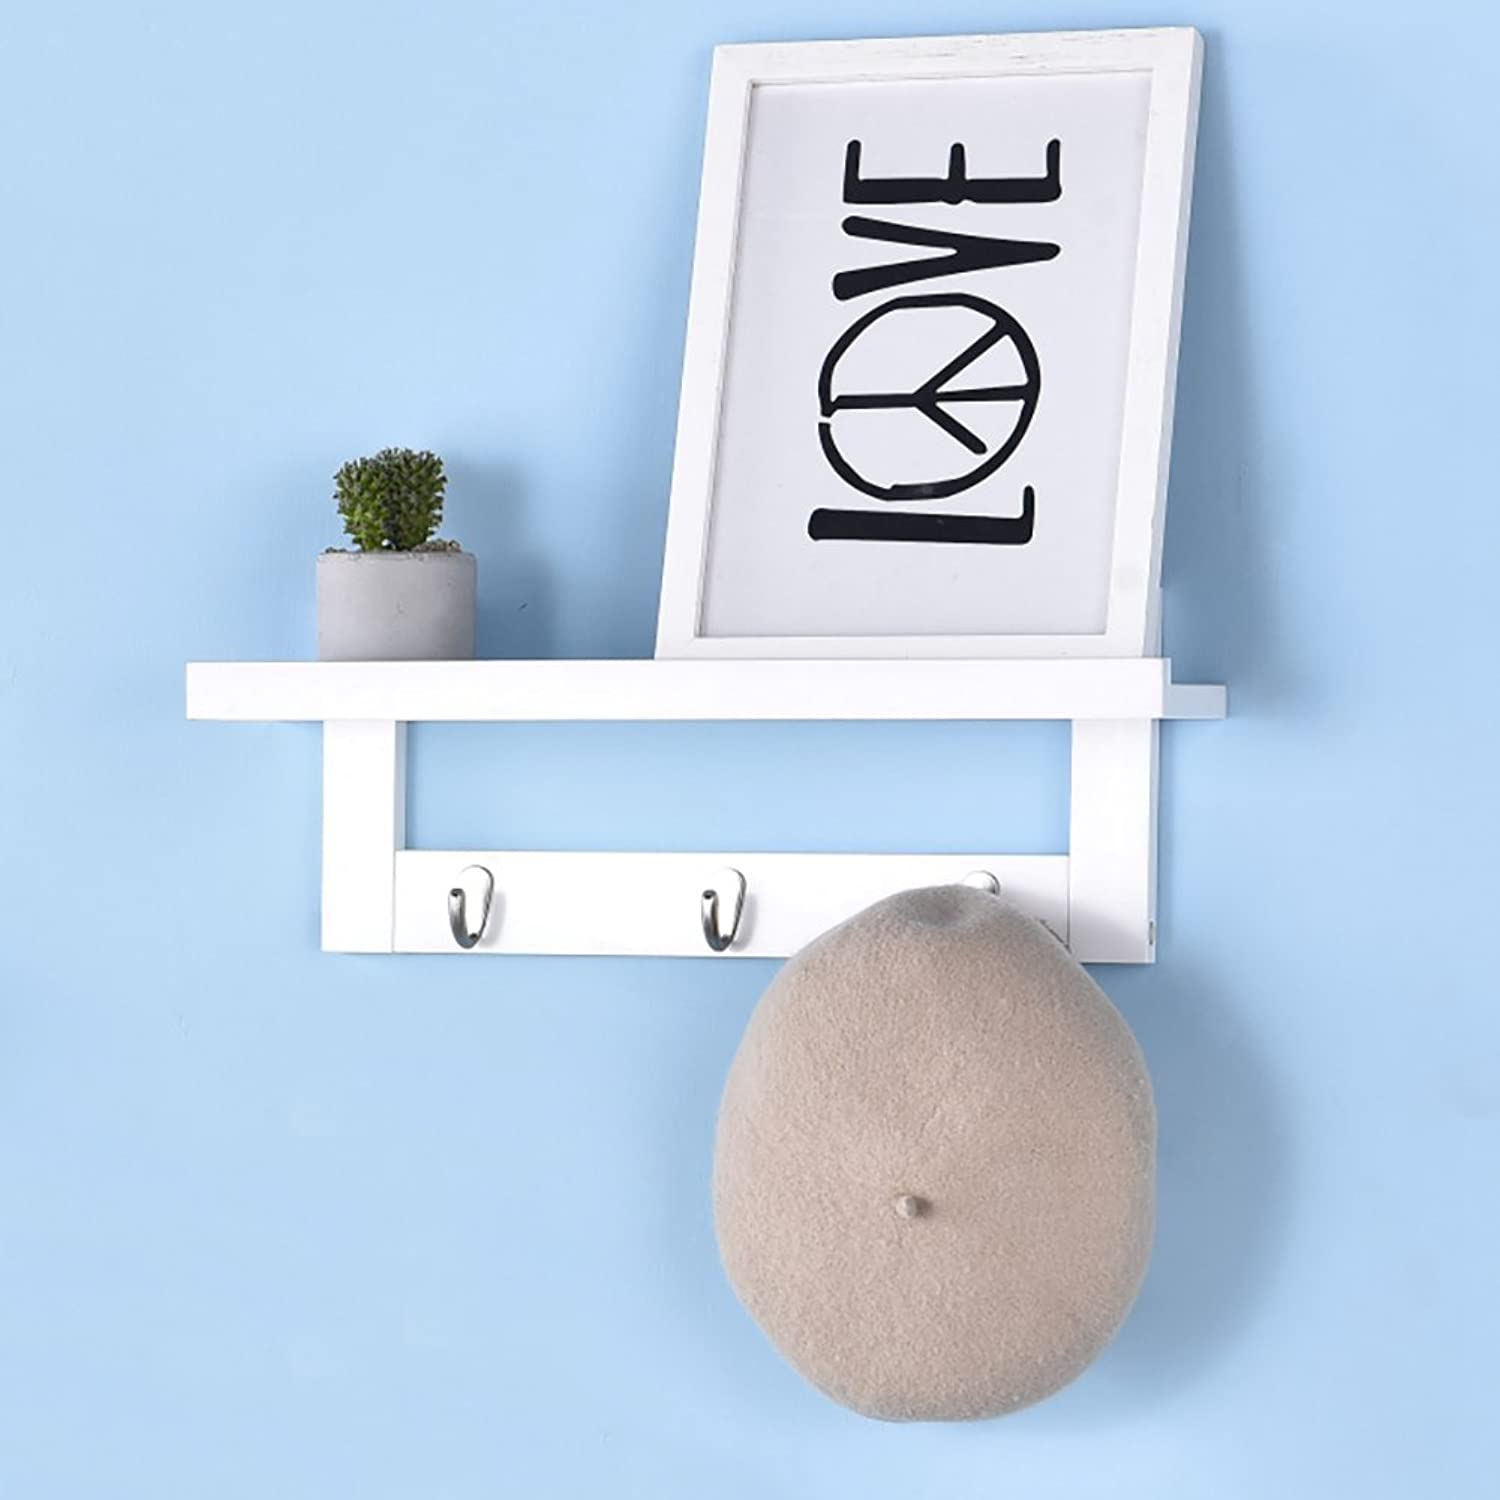 LFF- Wall Coat Rack Solid Wood Simple Modern Wall-Mounted Clothes Hanger Simple Bedroom Bag Rack Entrance Shelf (color   White, Size   A)